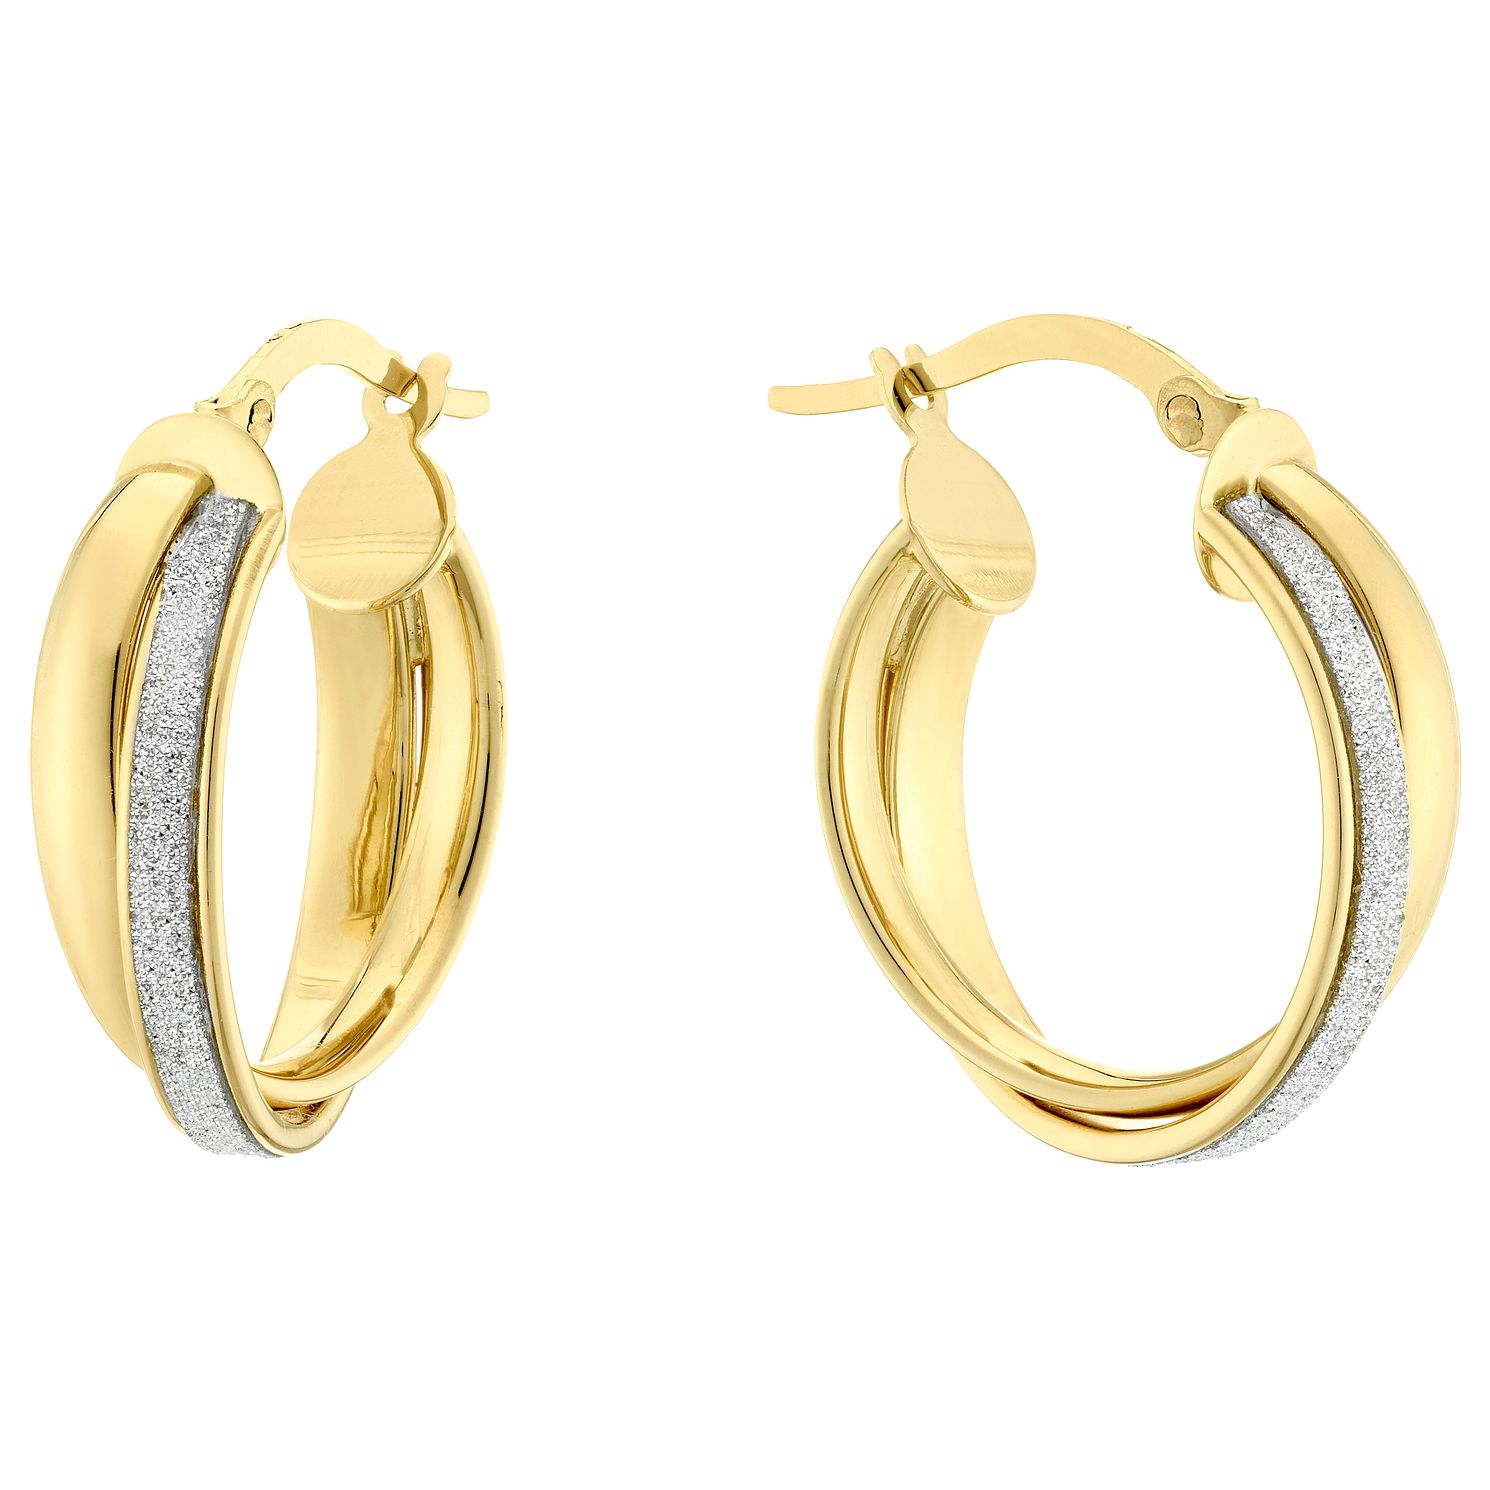 9ct Yellow Gold Oval Twist Glitter Creole Earrings - Product number 4517490